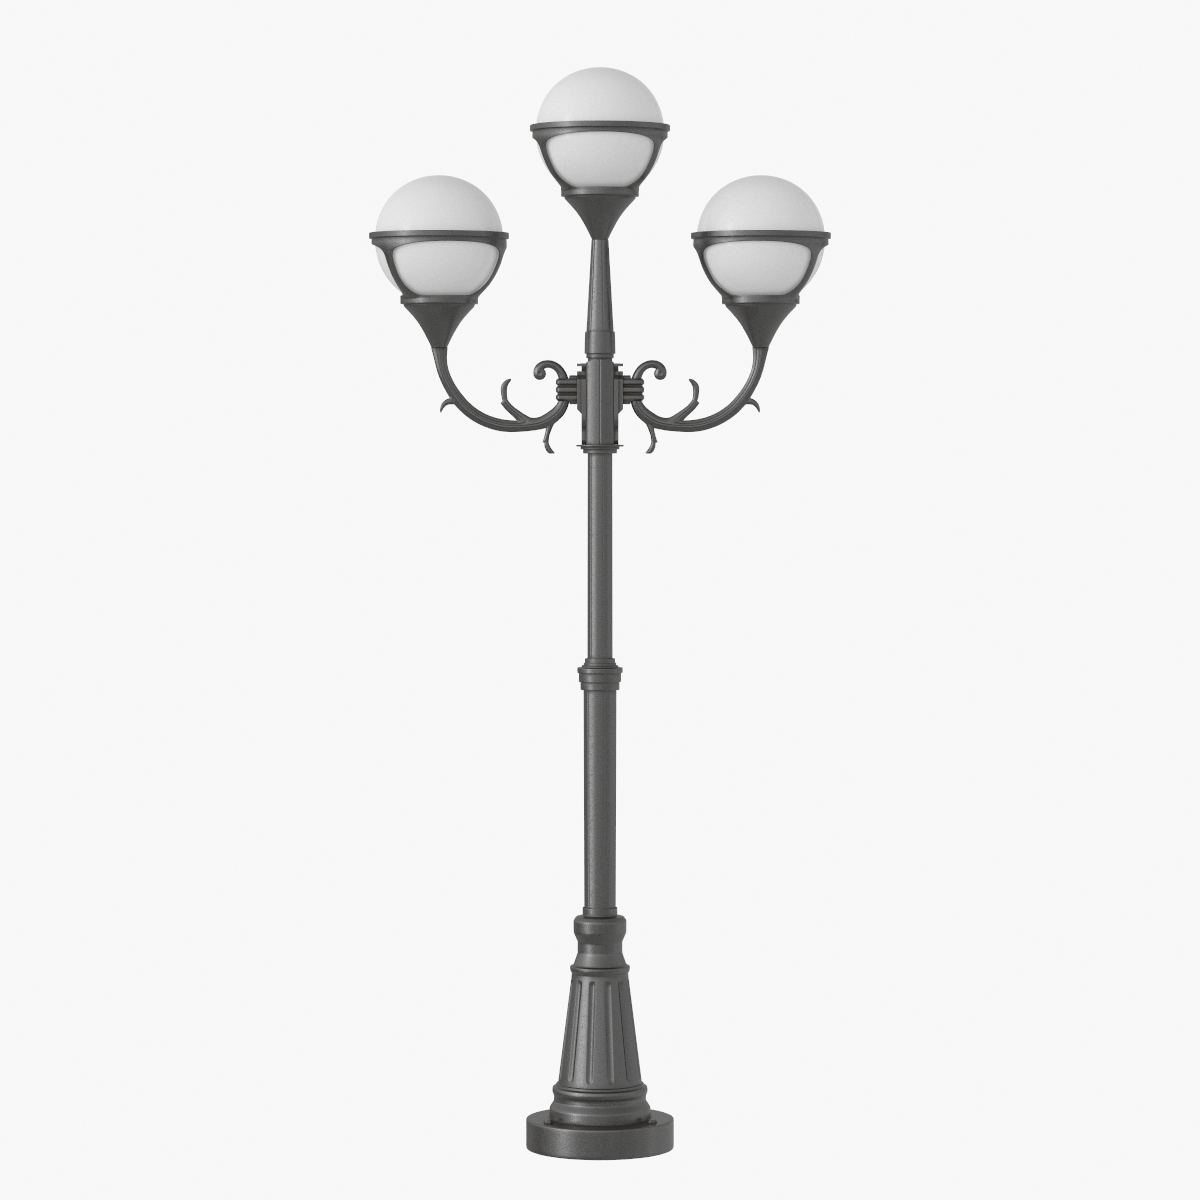 Street Light Lamp Post By Vk Studio 3docean